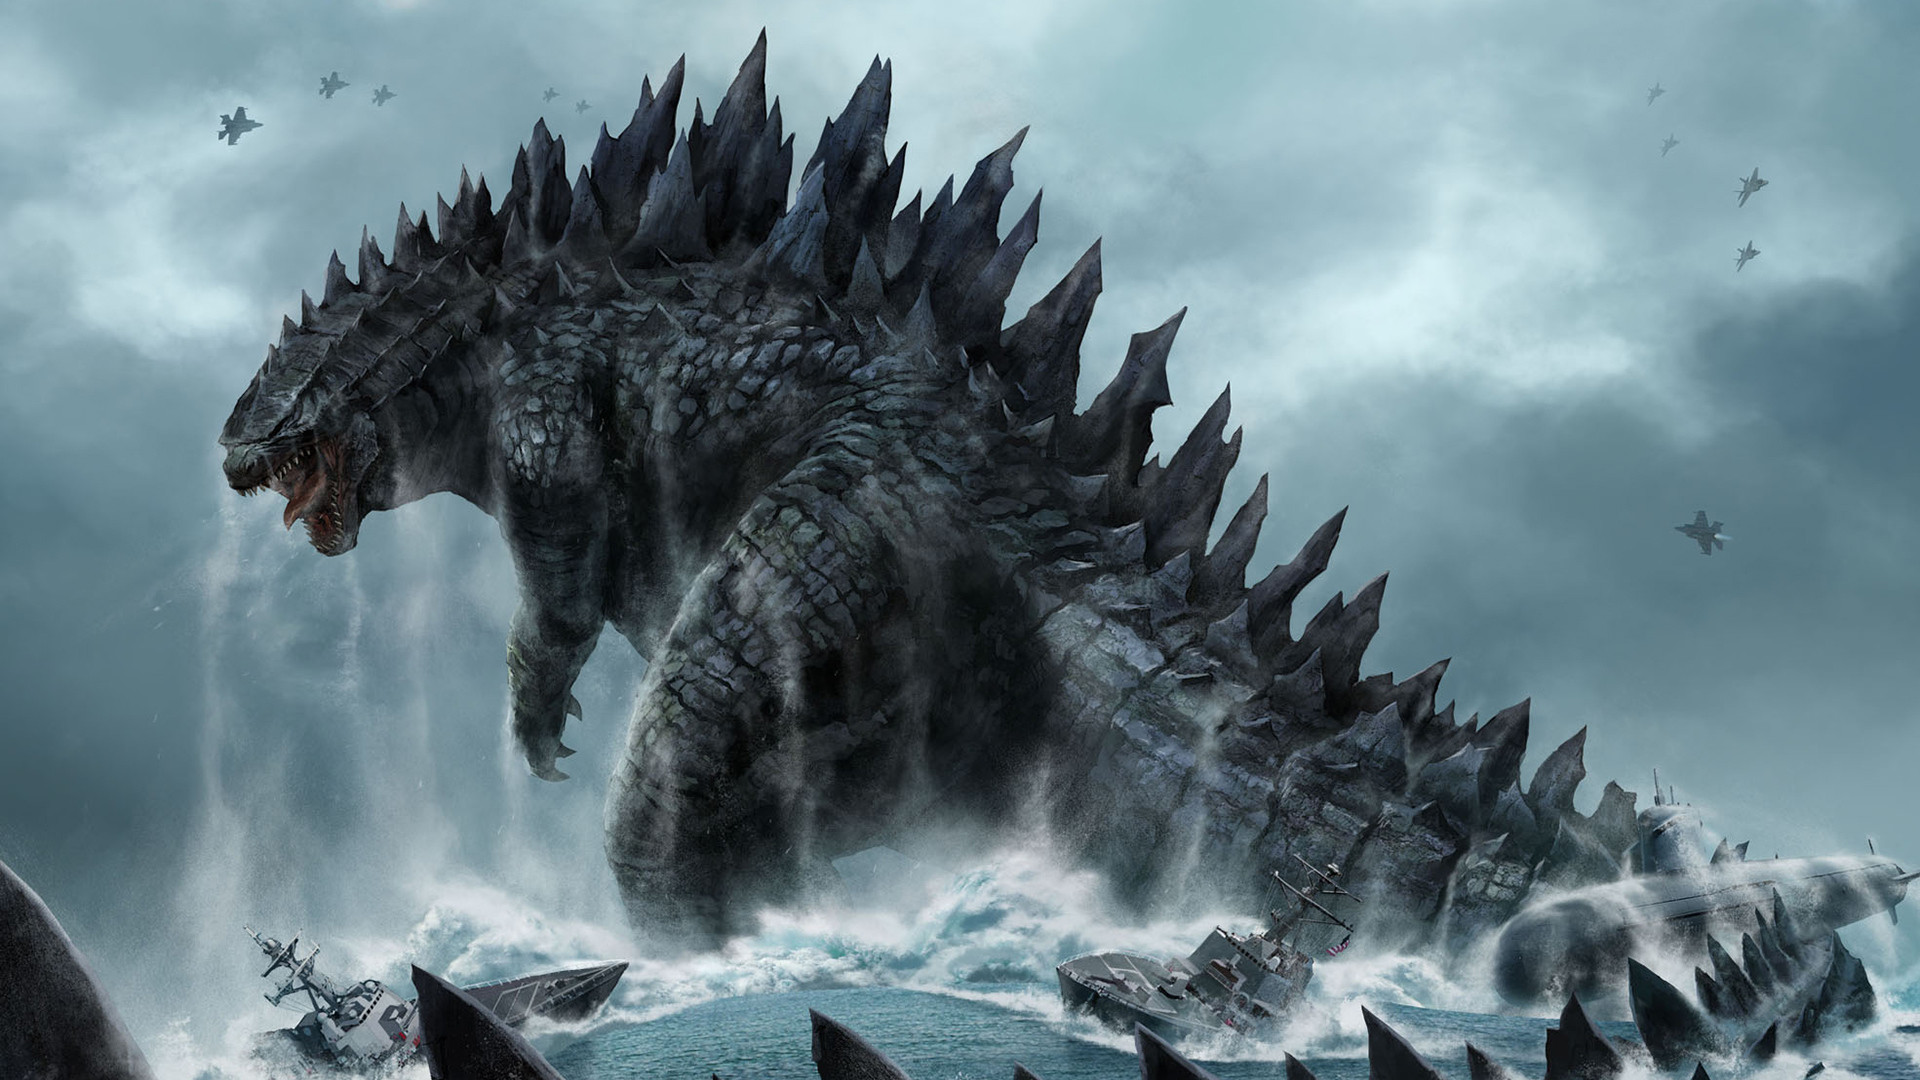 1920x1080  Wallpaper godzilla, monster, dinosaur, submarine, tail